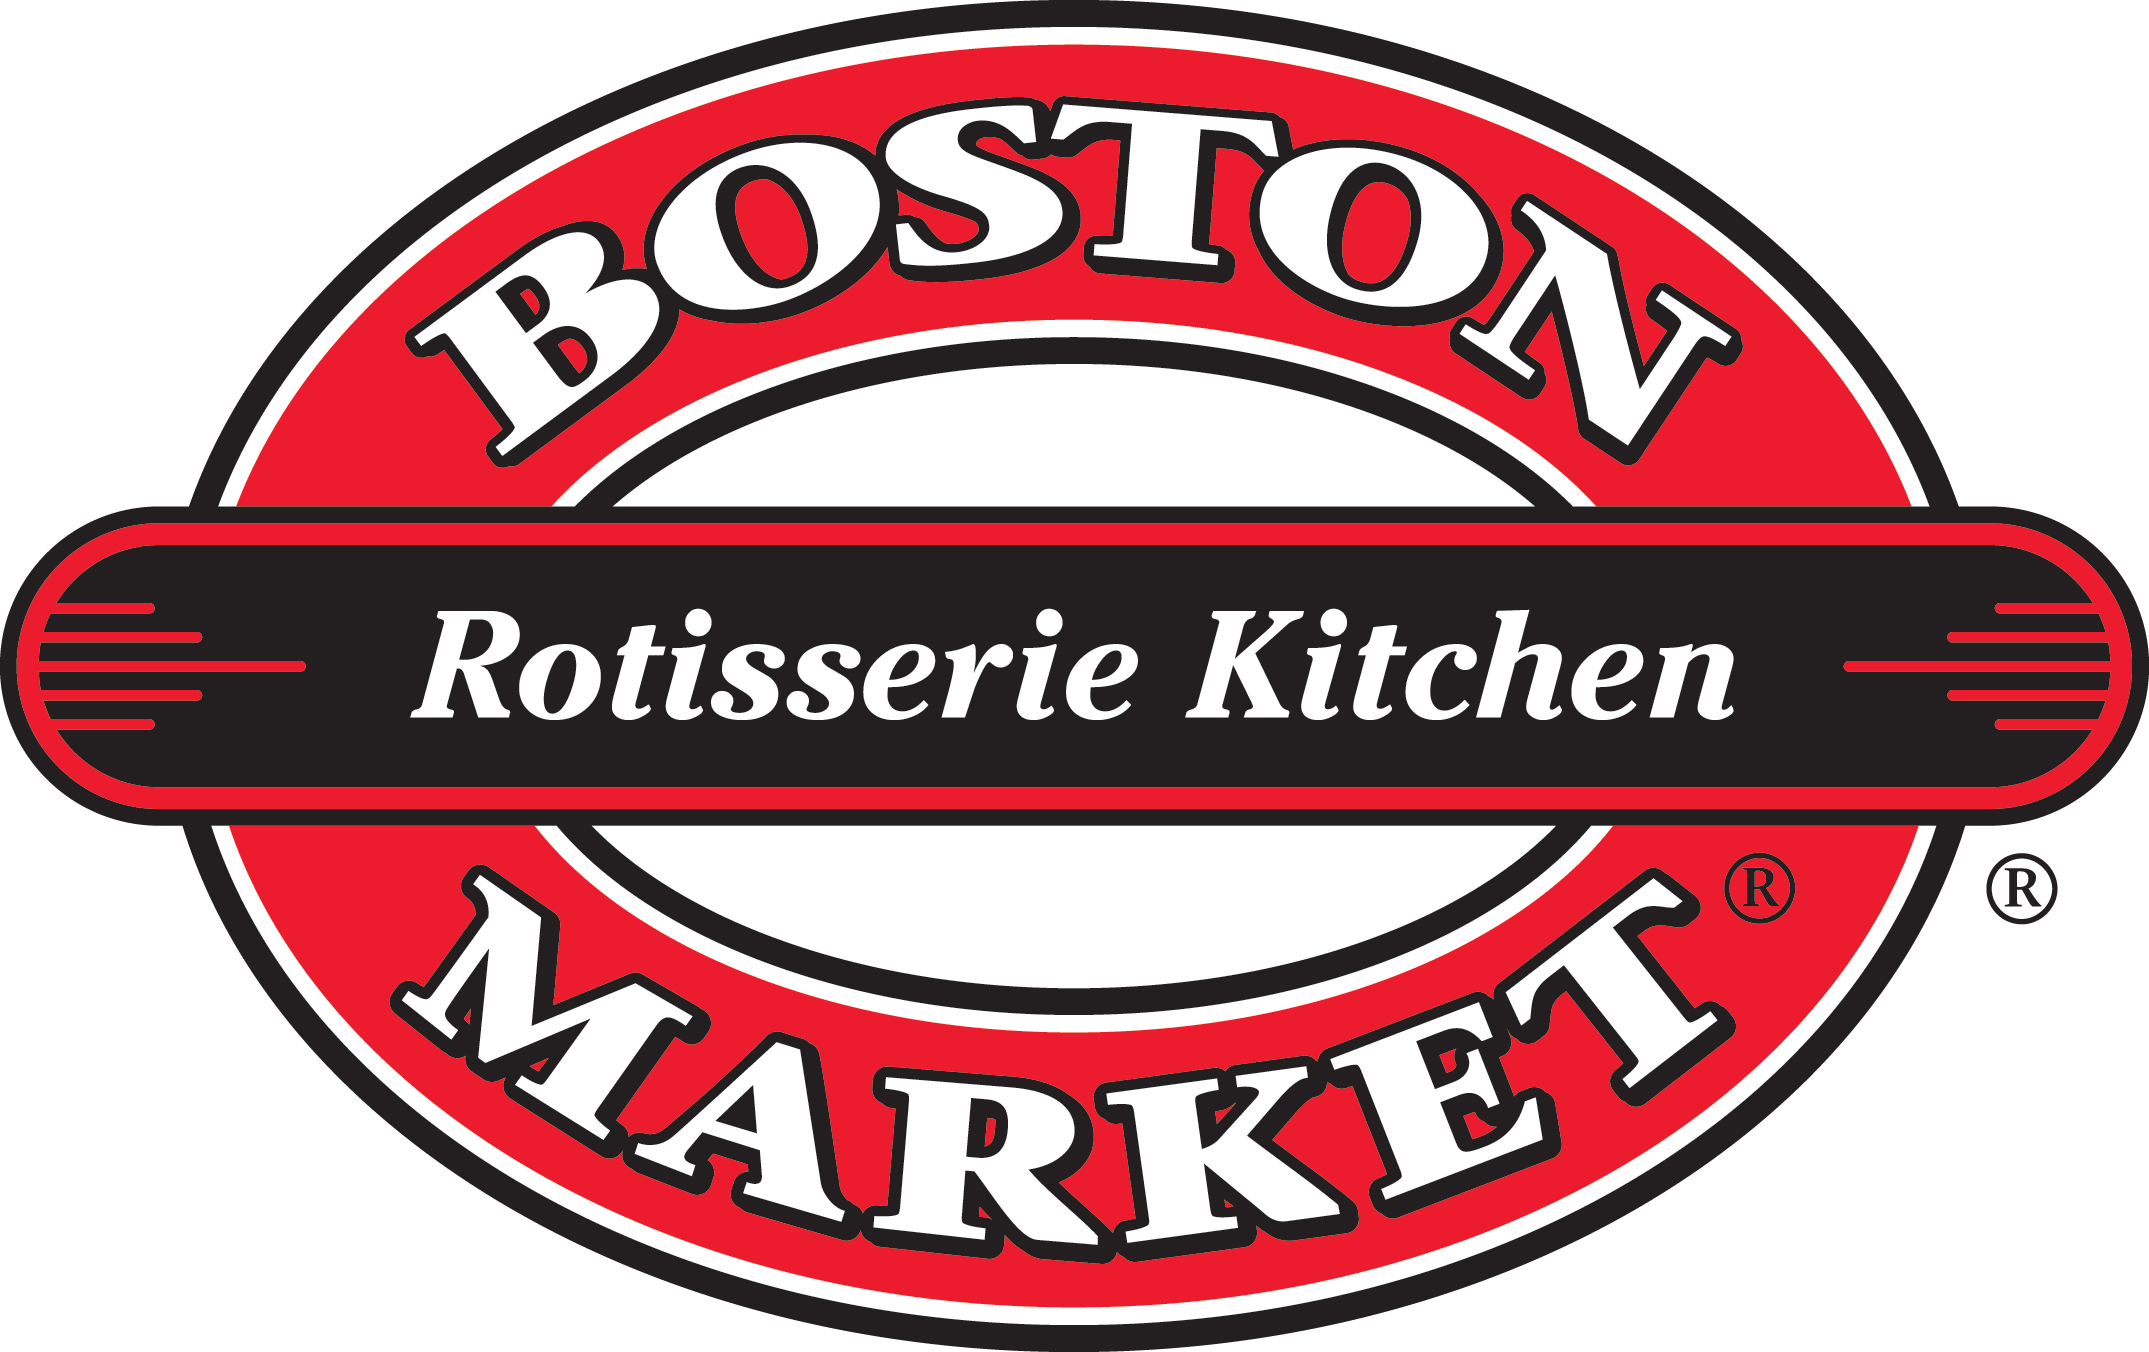 Boston Market BOGO Individual Meal w/drink purchase 4/7/21 only